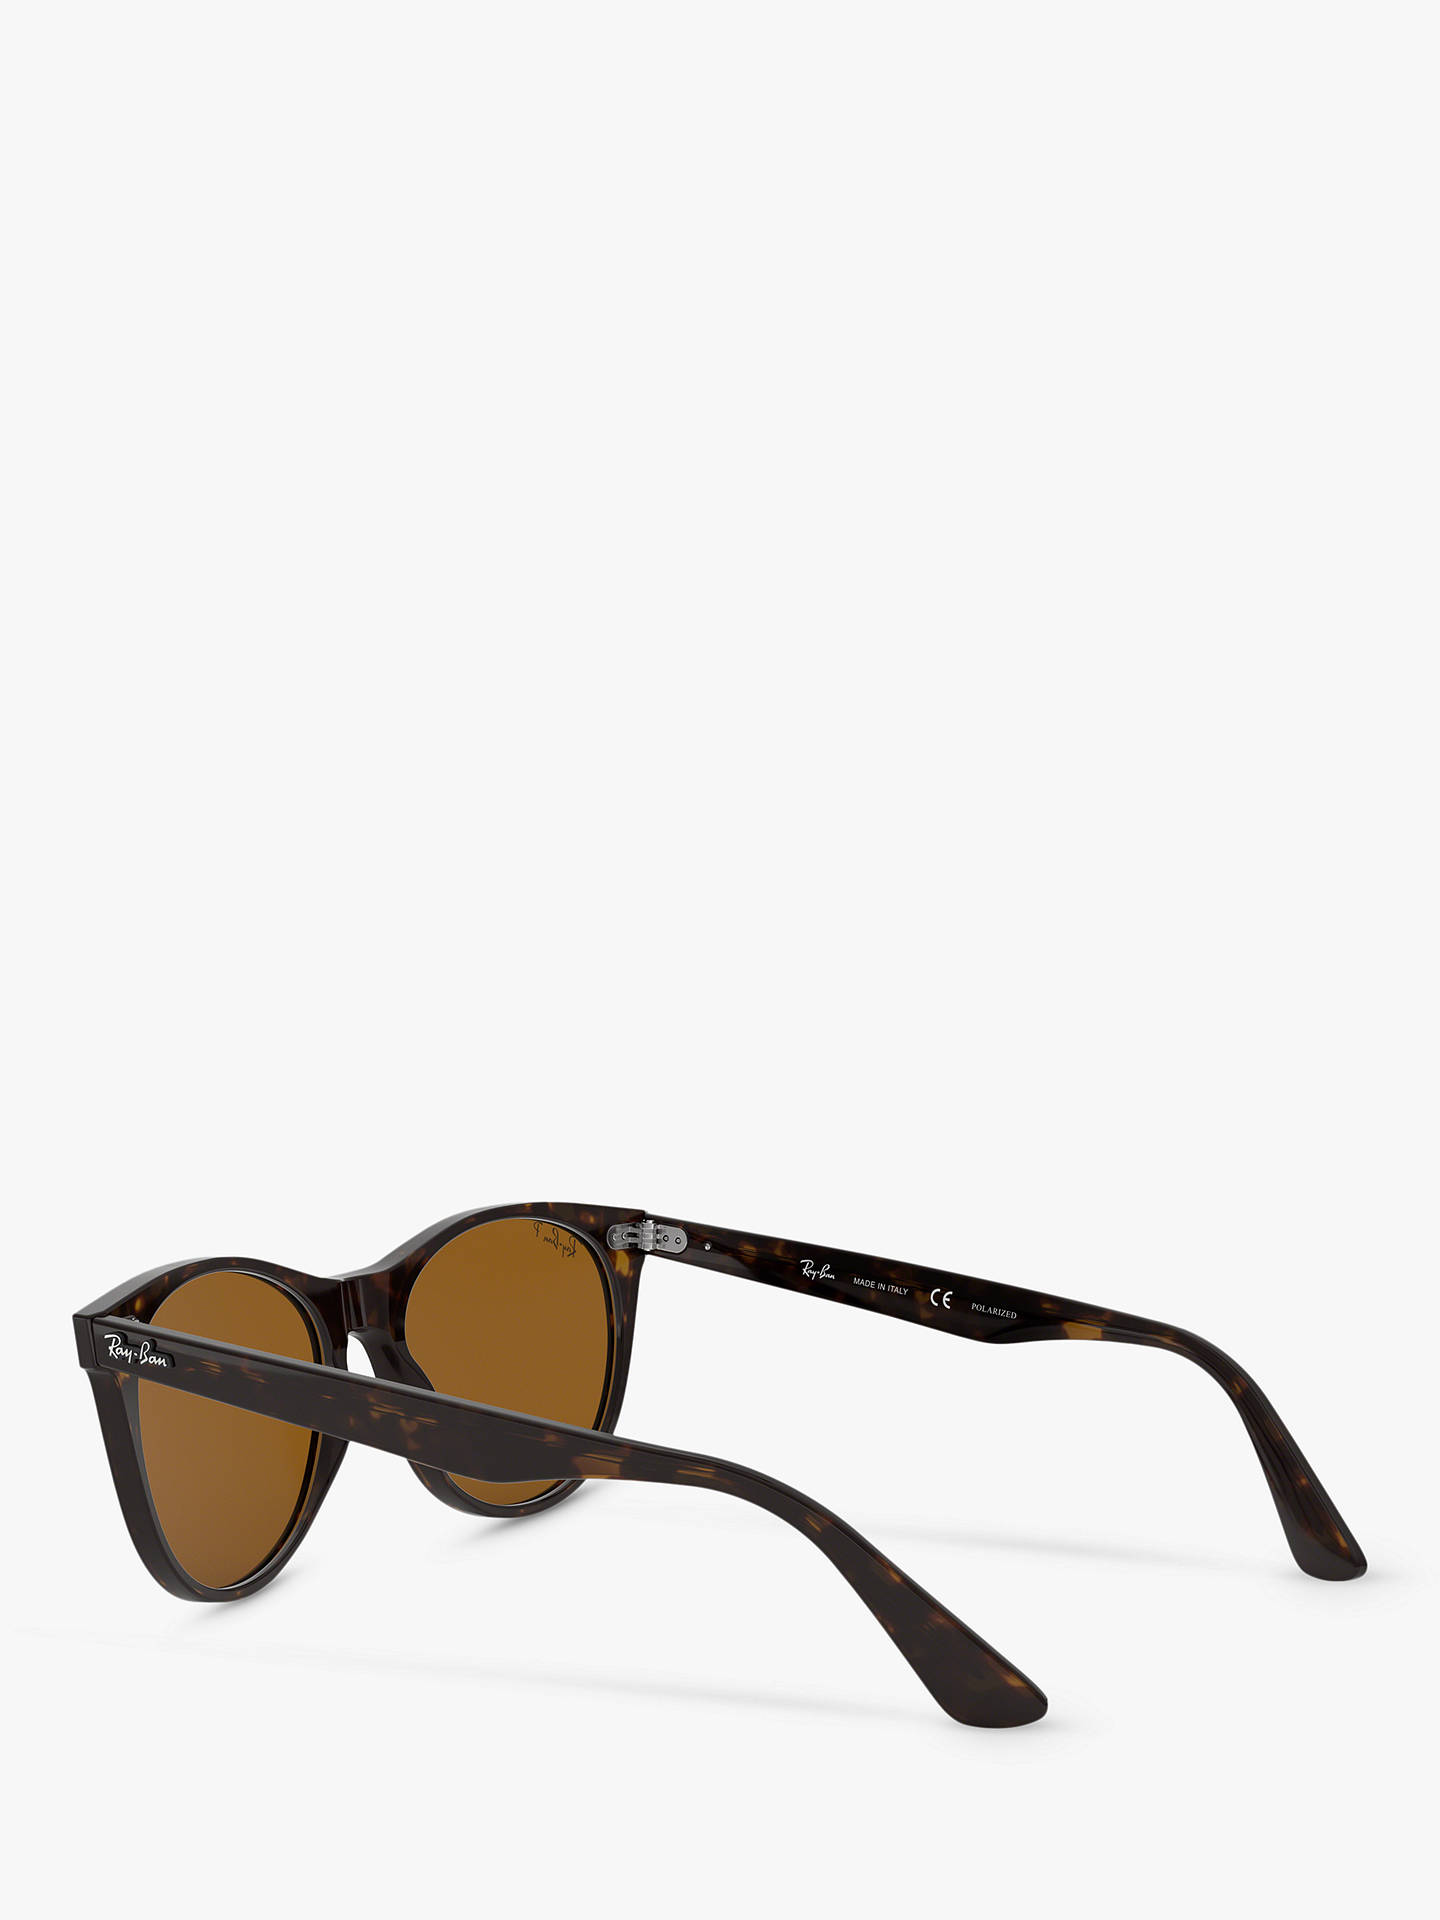 ca425d2f86 ... BuyRay-Ban RB2185 Women s Wayfarer II Evolve Polarised Sunglasses